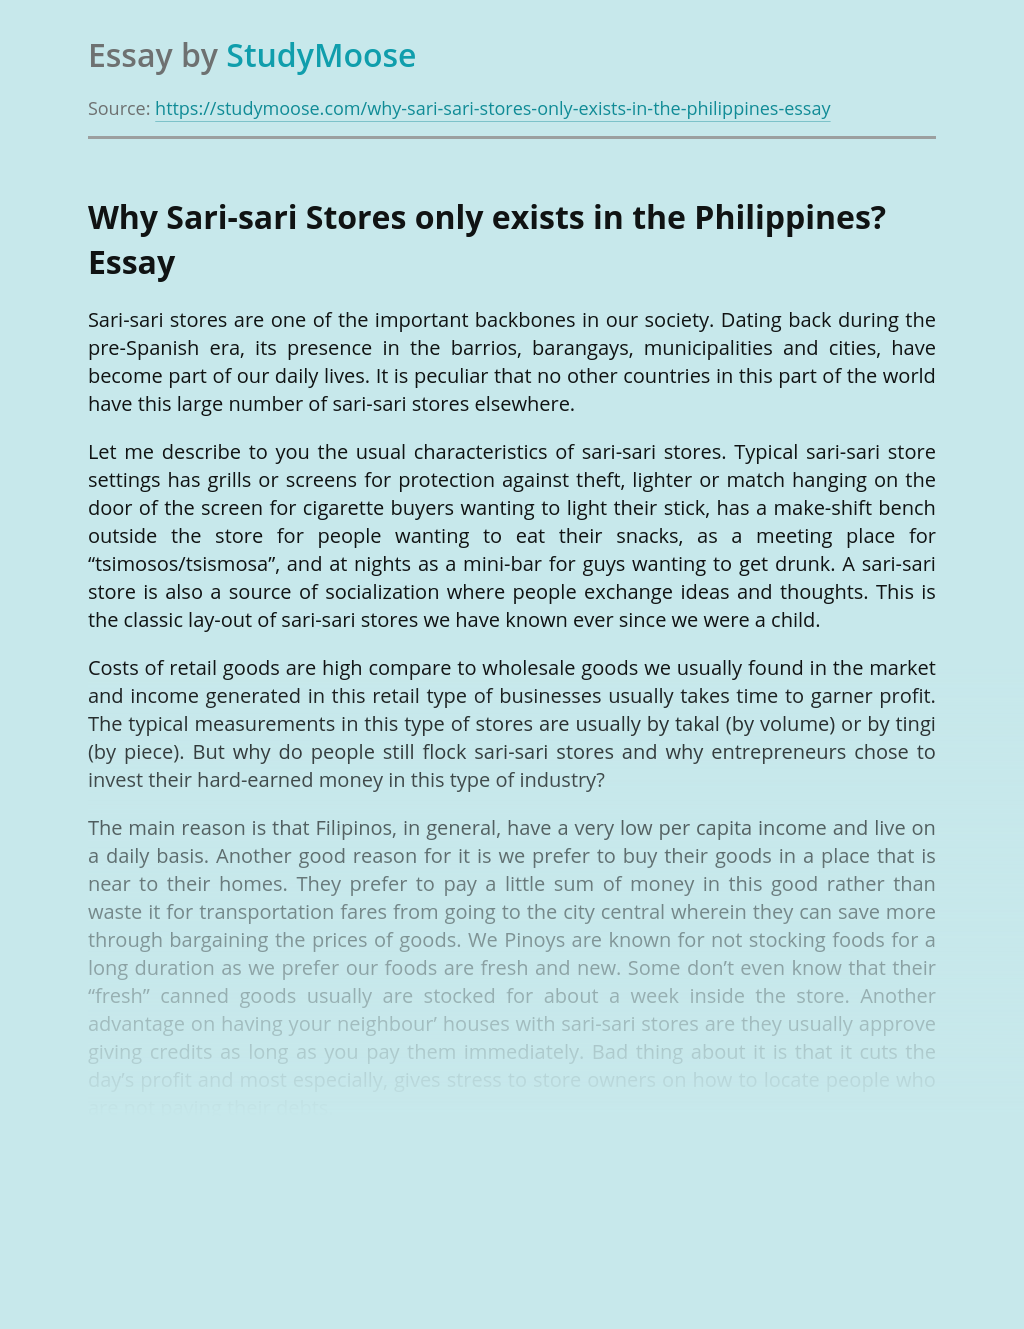 Why Sari-sari Stores only exists in the Philippines?